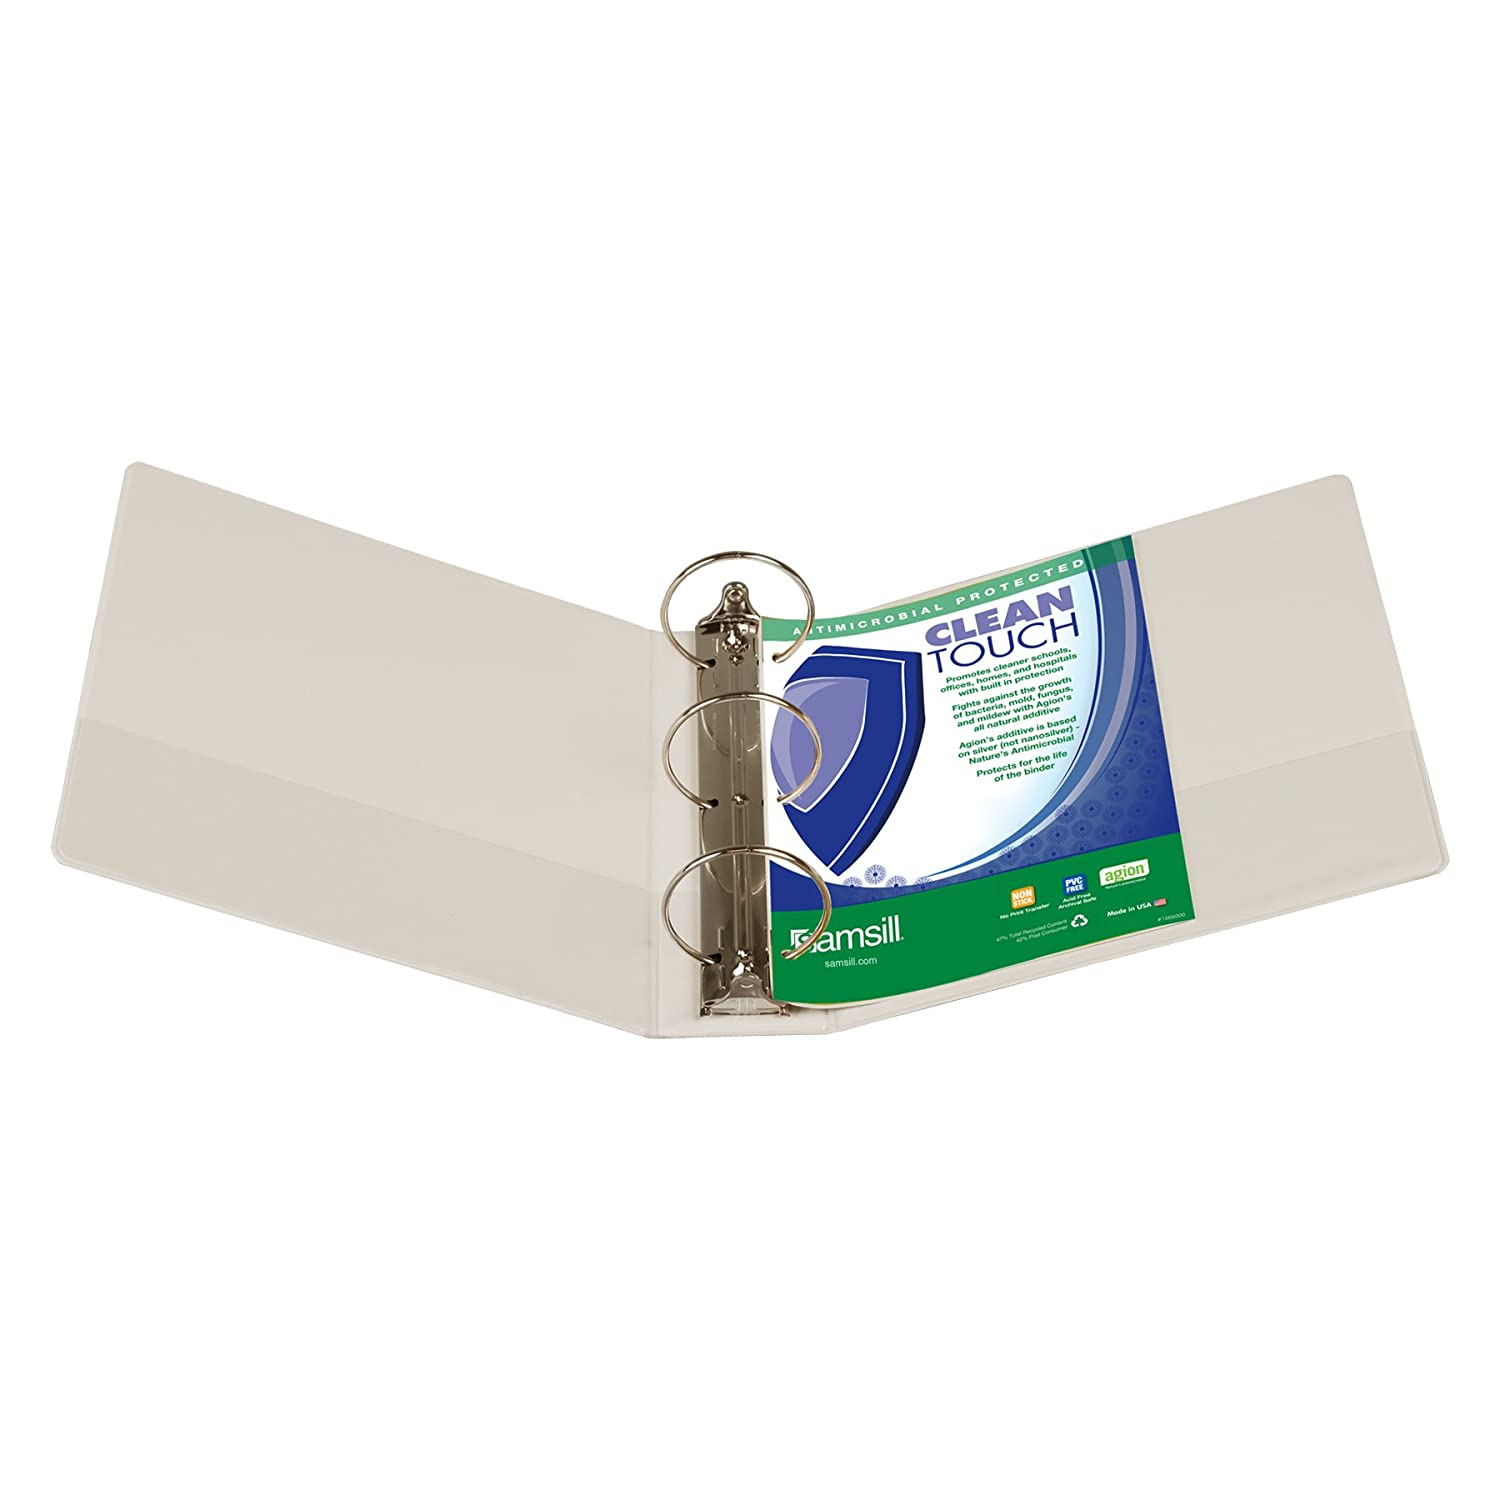 C... Samsill Clean Touch 3 Ring View Binder Protected by Antimicrobial Additive